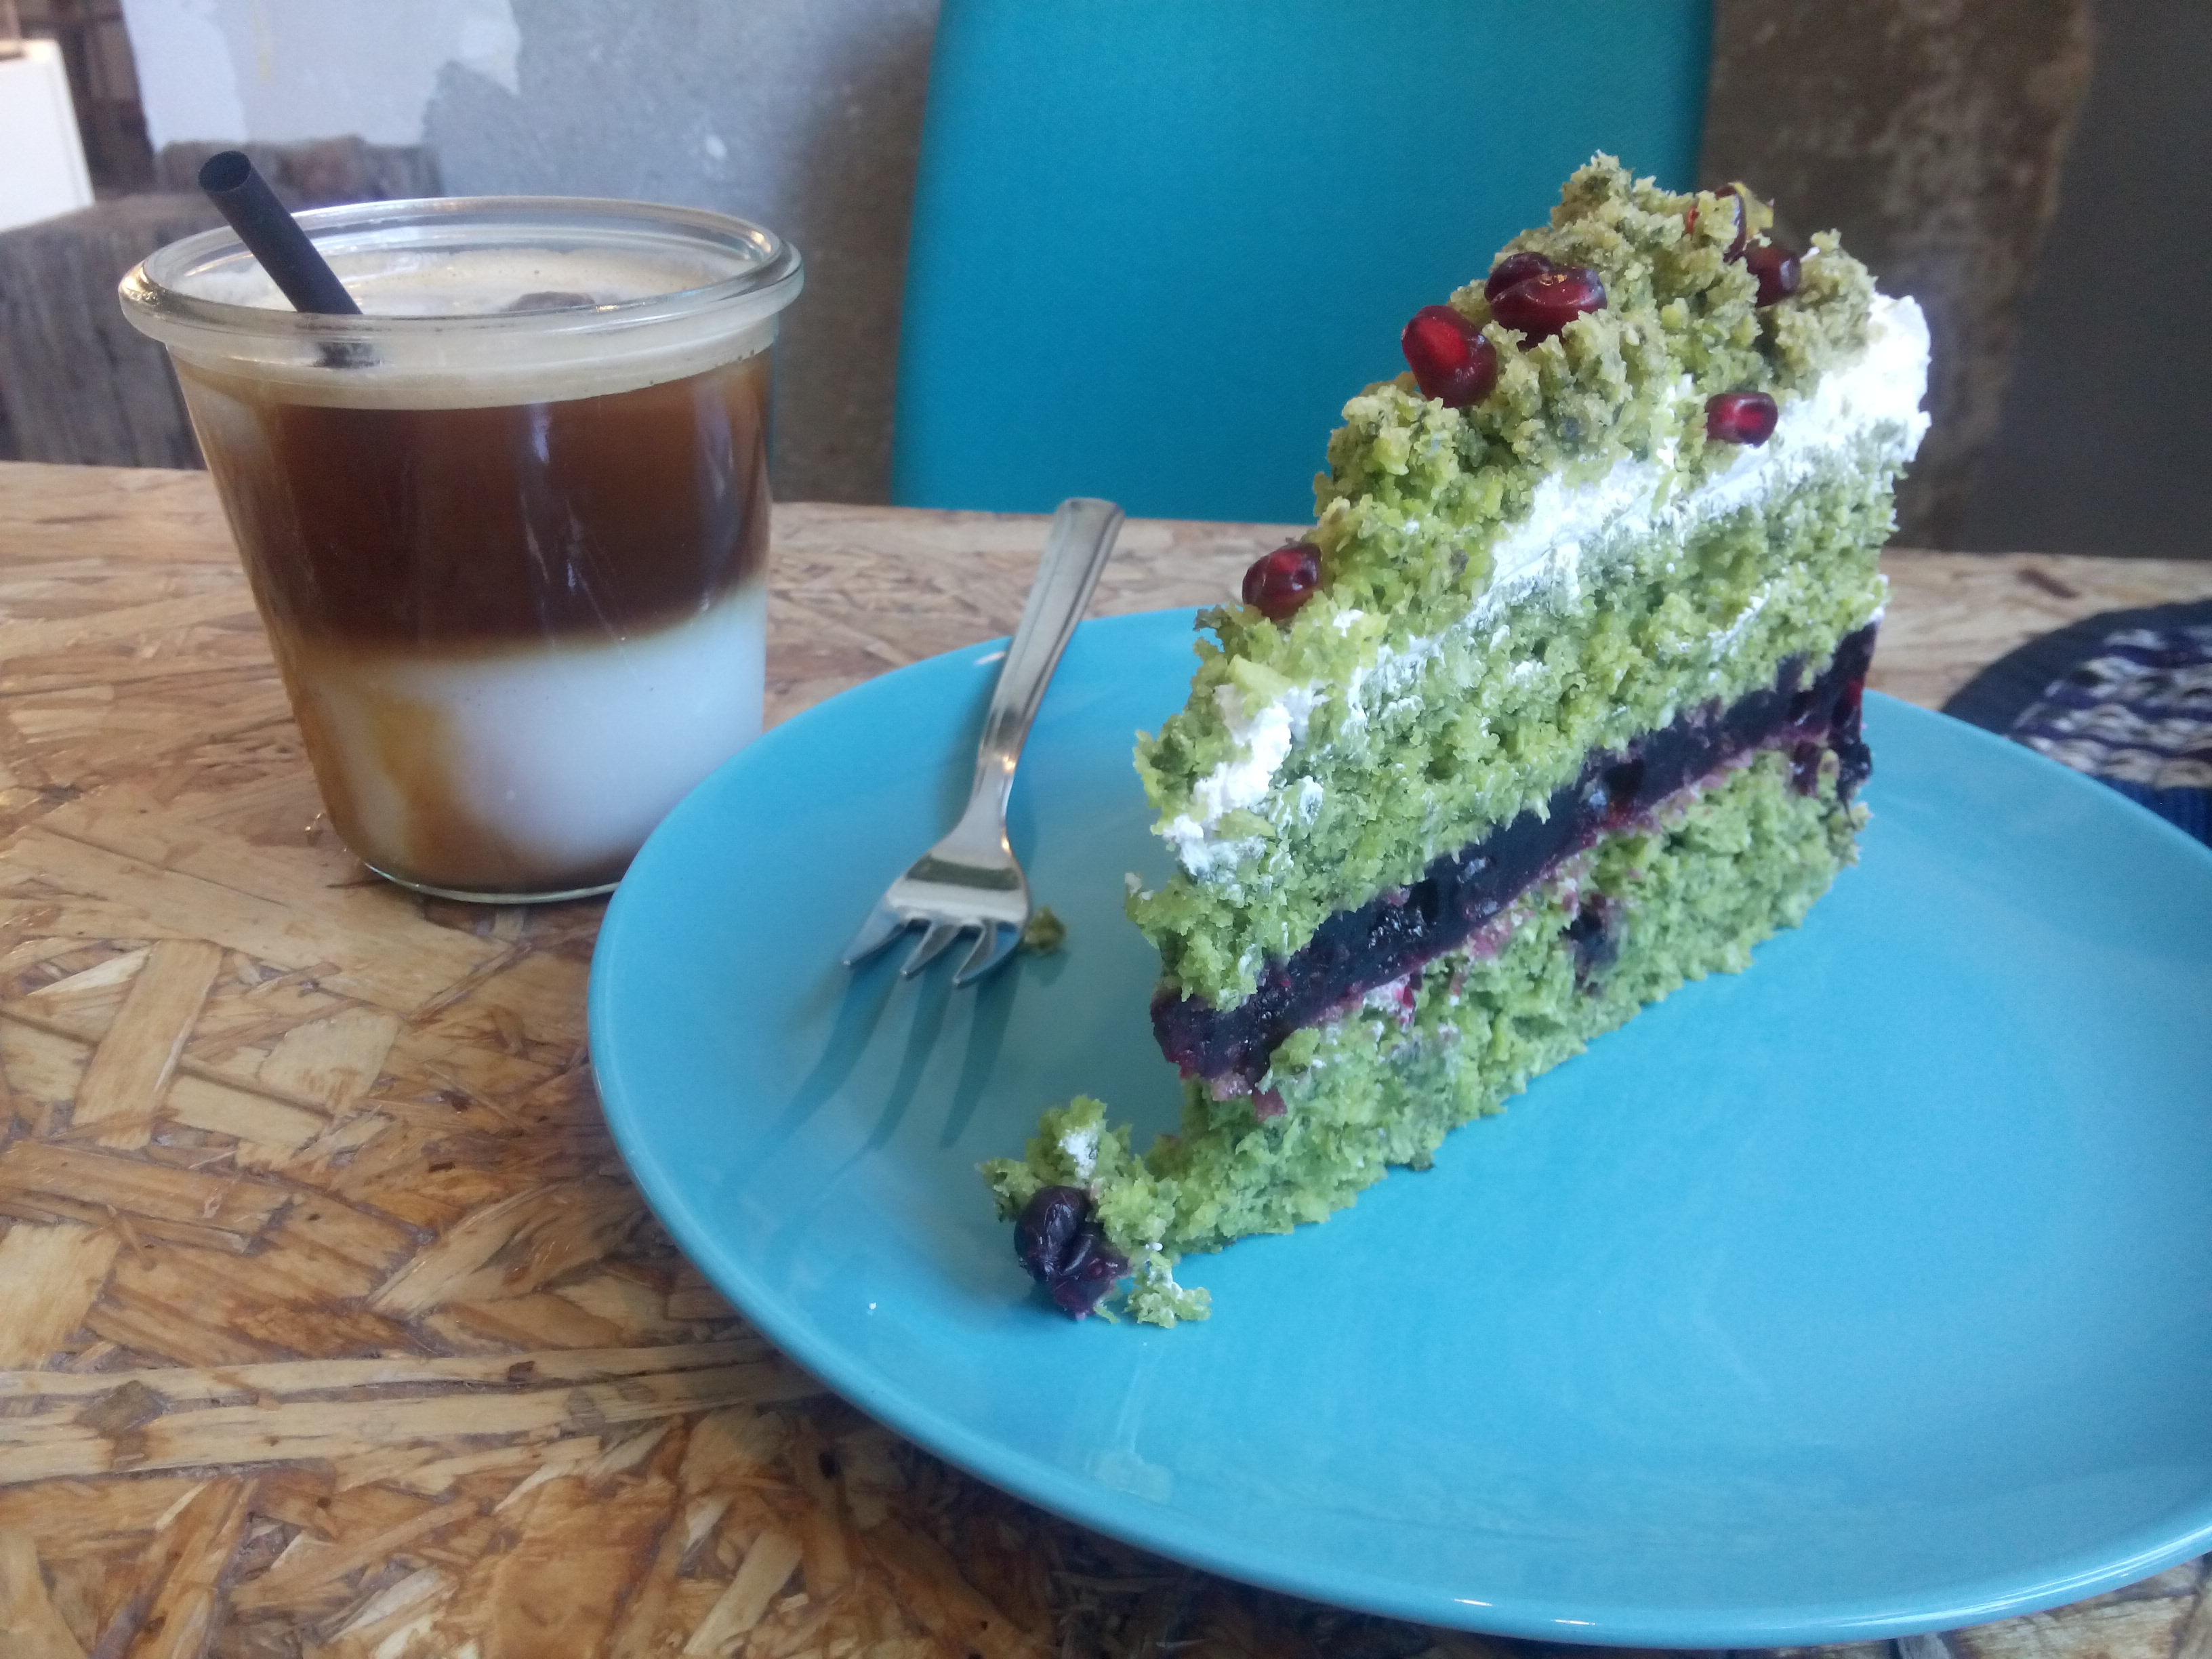 A small glass with half white and half brown liquid beside a green cake on a blue plate